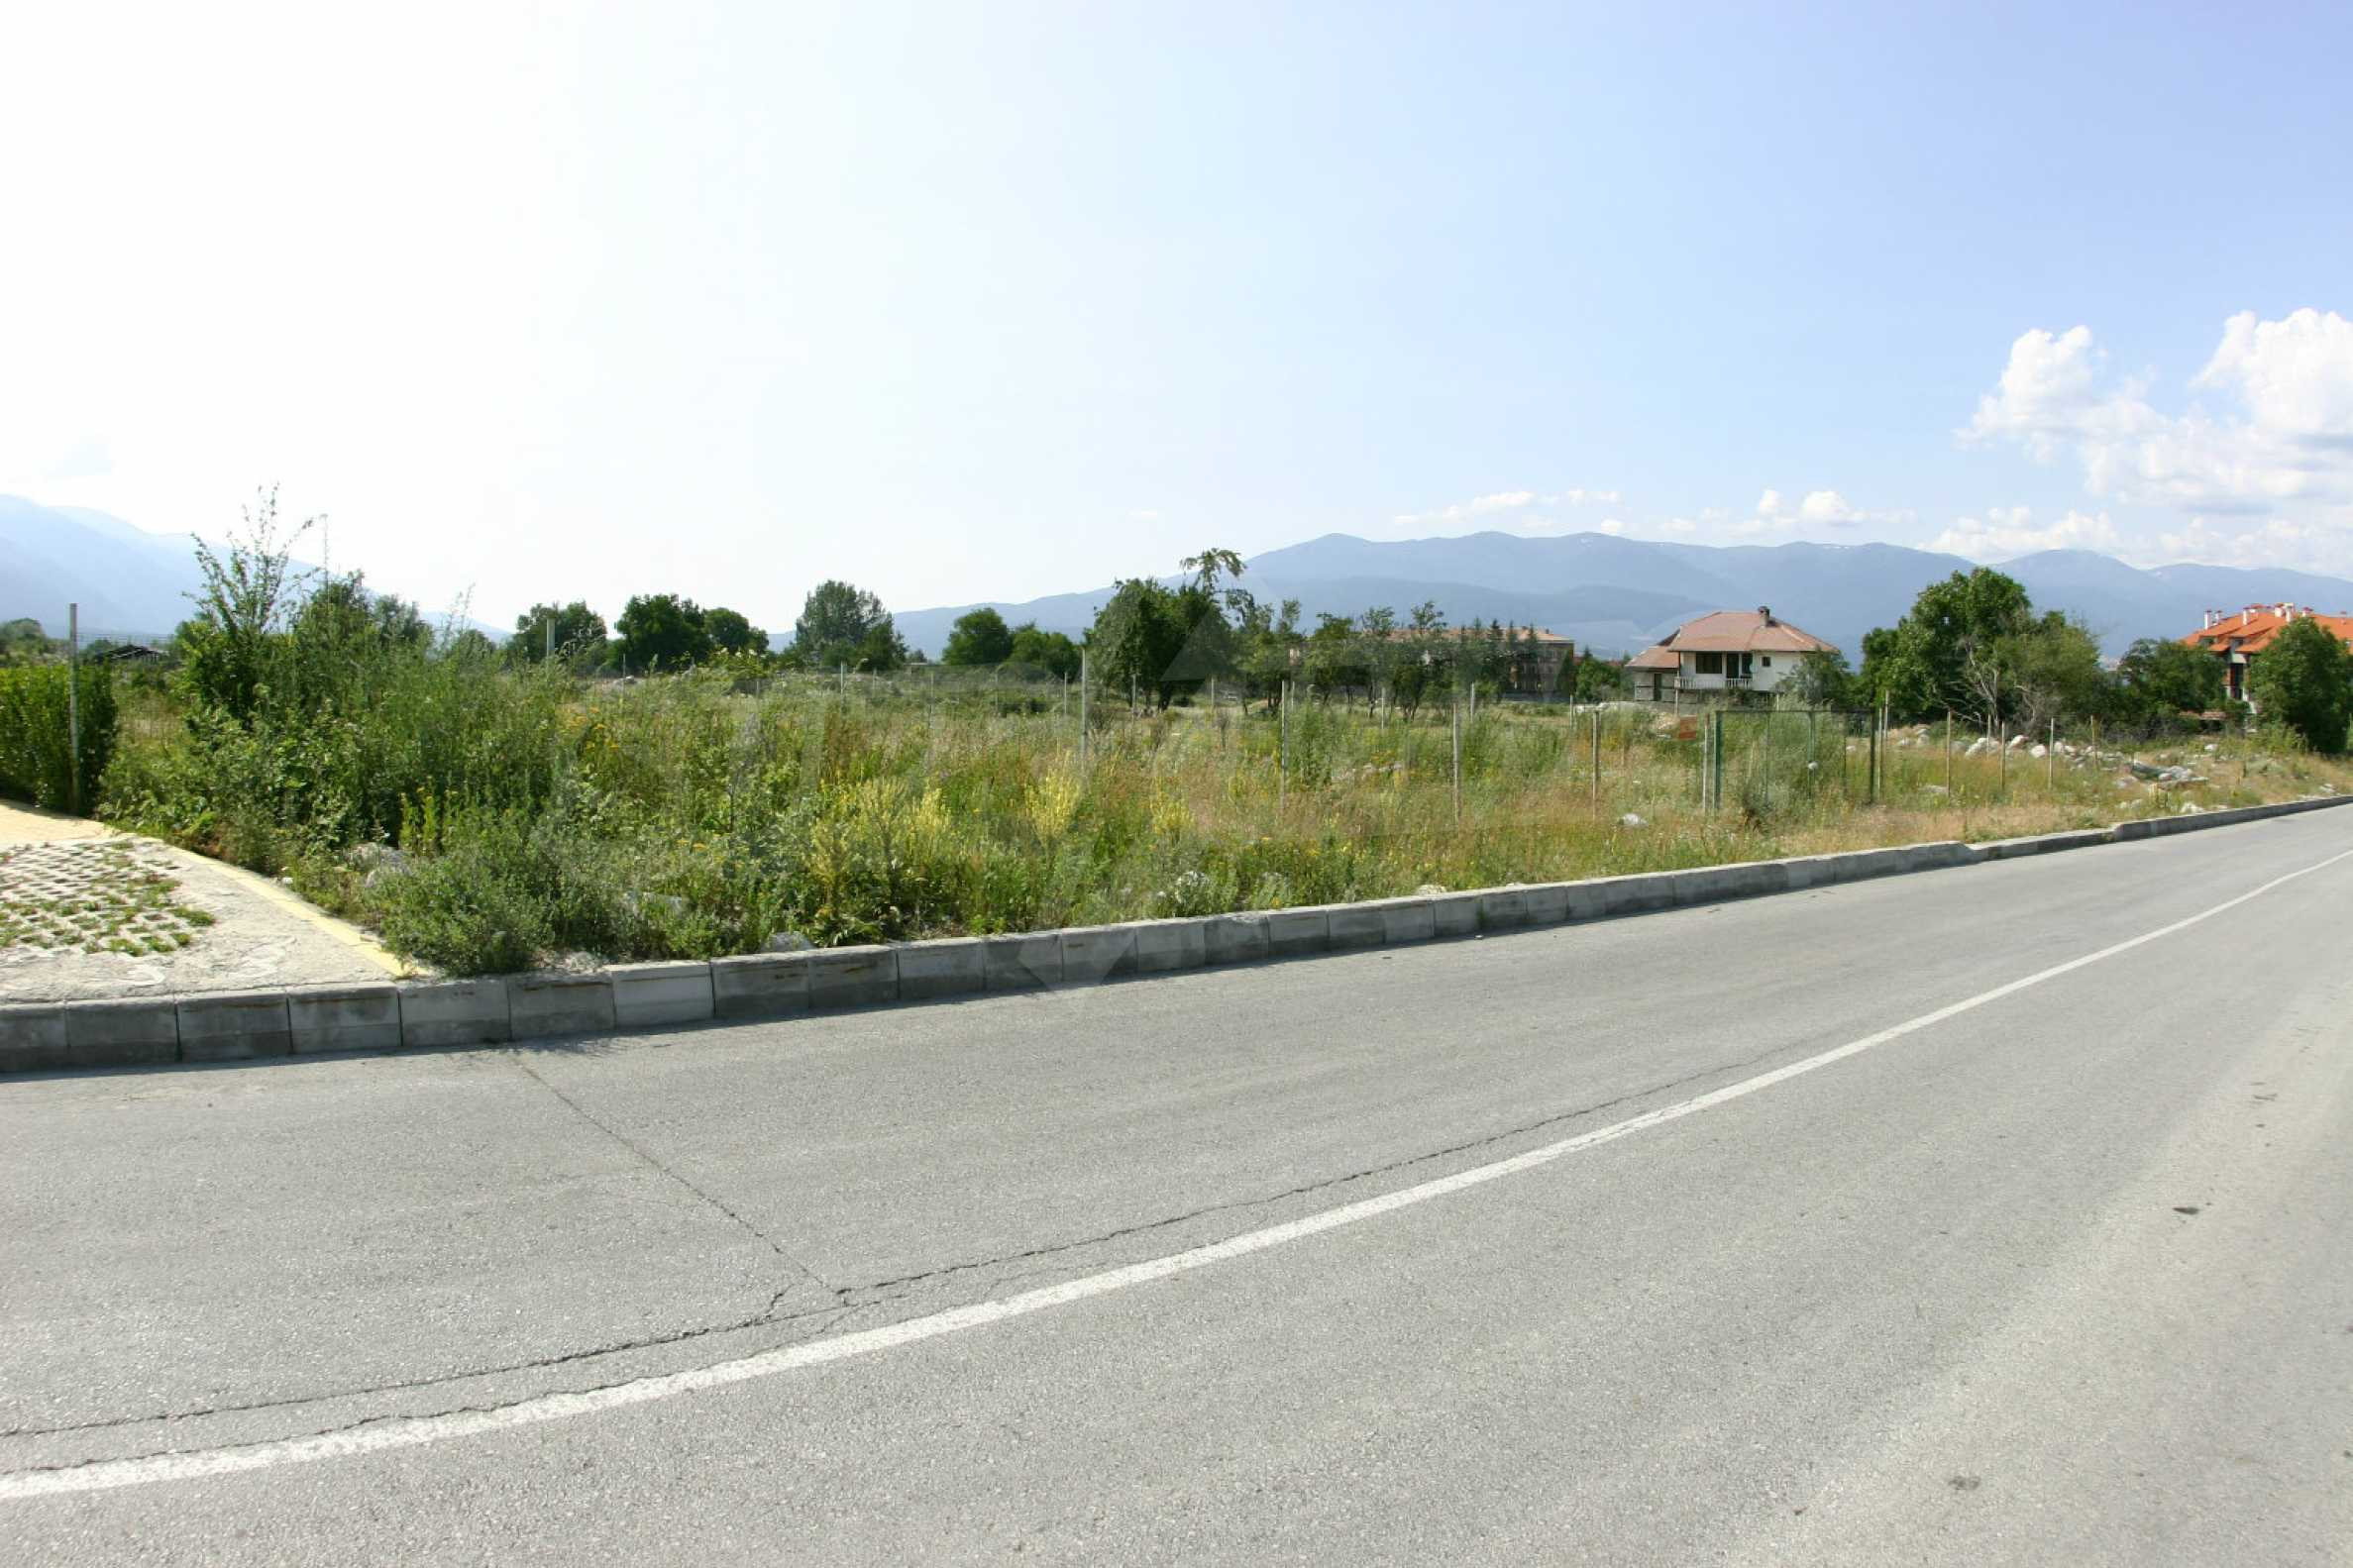 Agricultural land at the ring road in Bansko